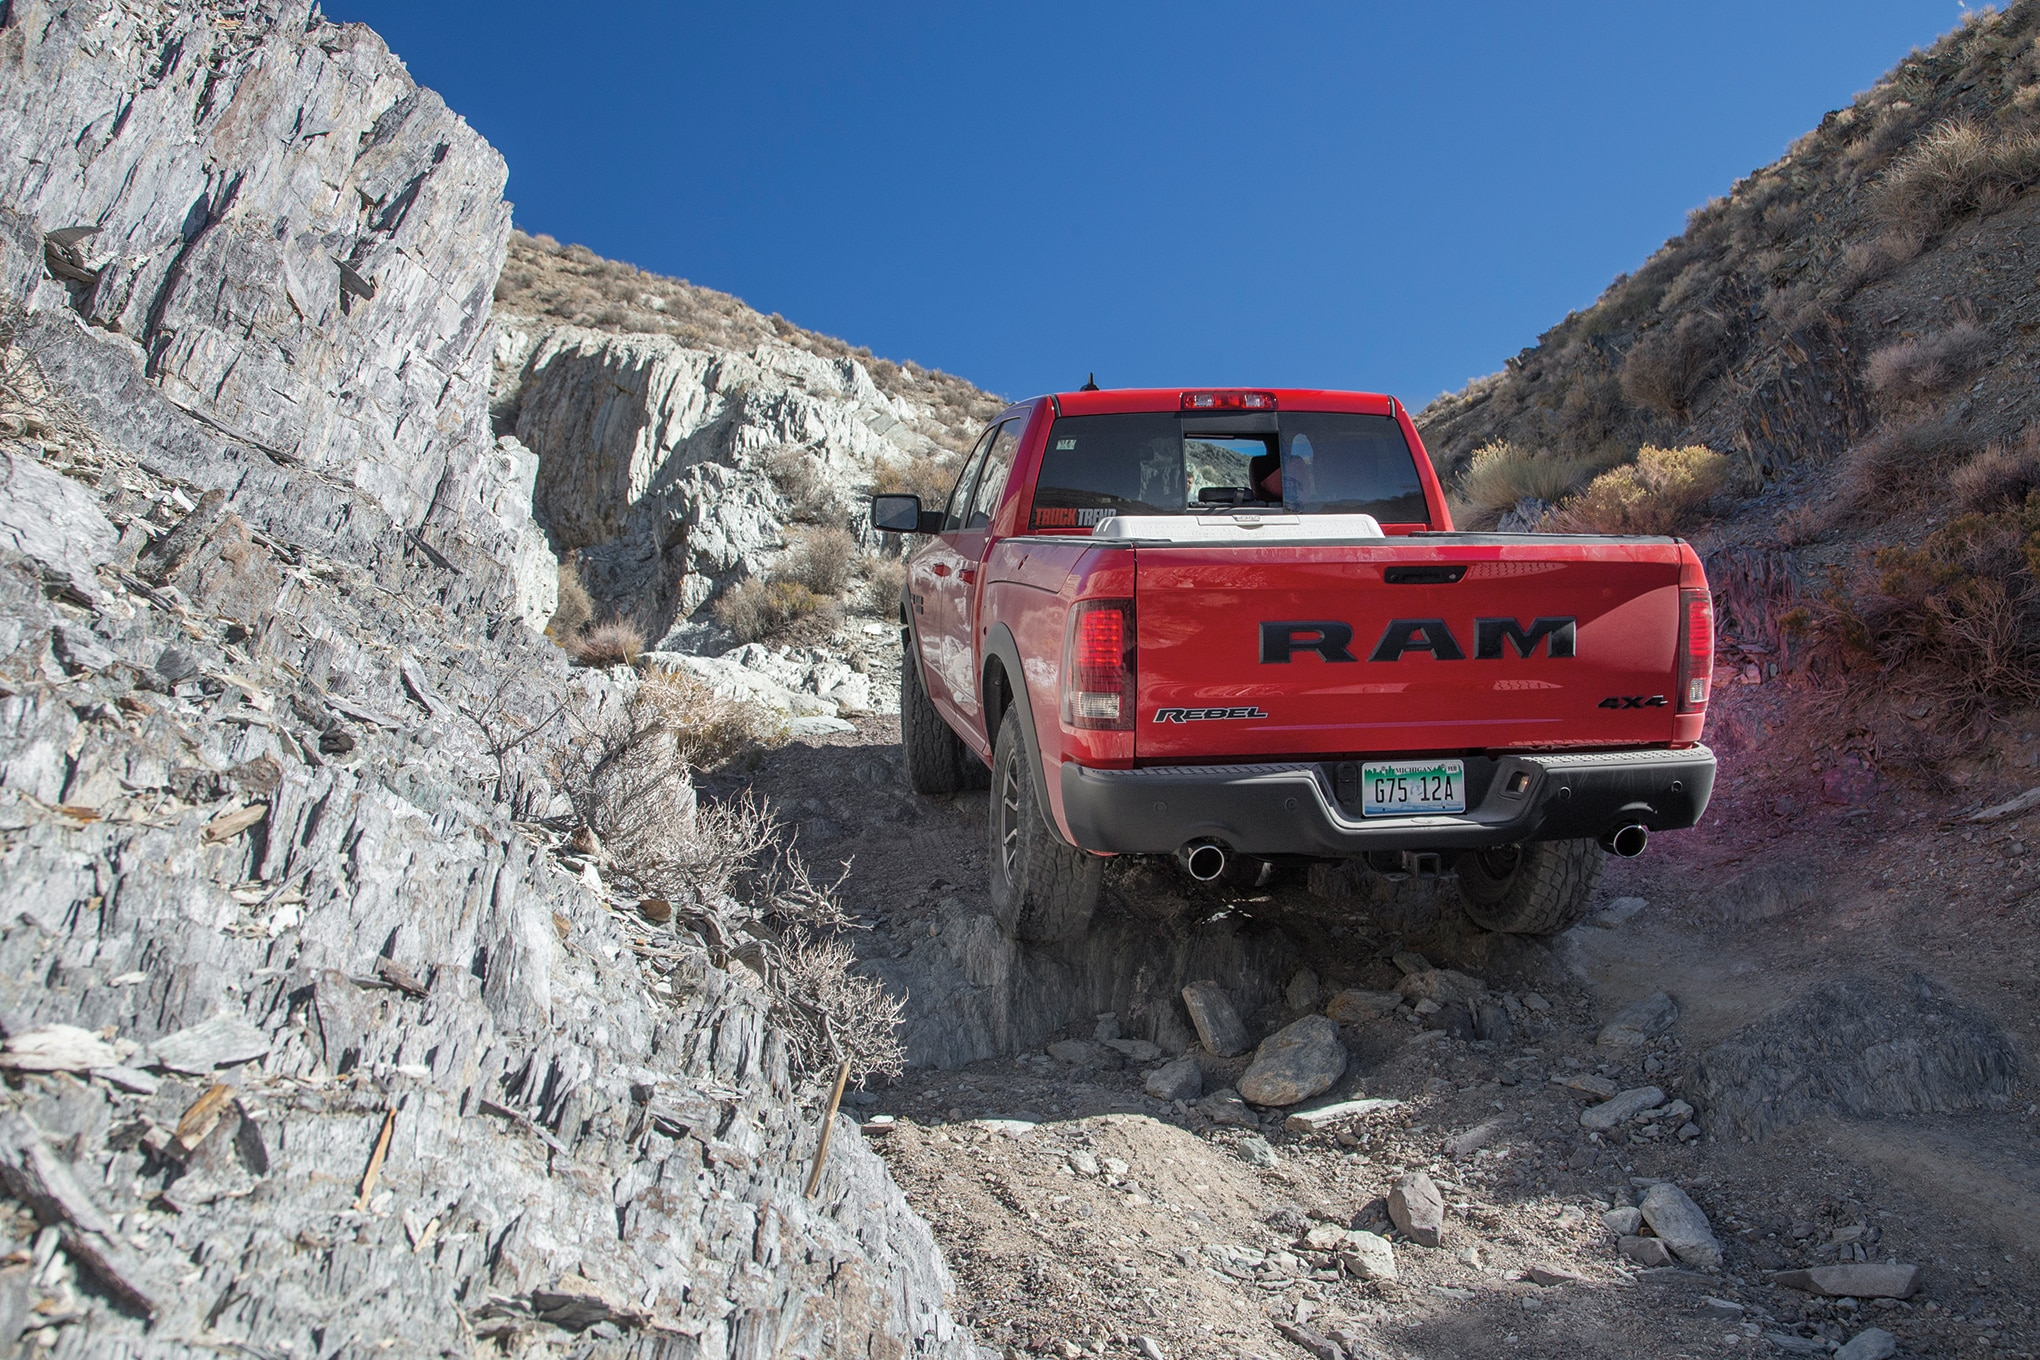 35 2016 Ram 1500 Rebel On Trail View Photo Gallery 13 Photos